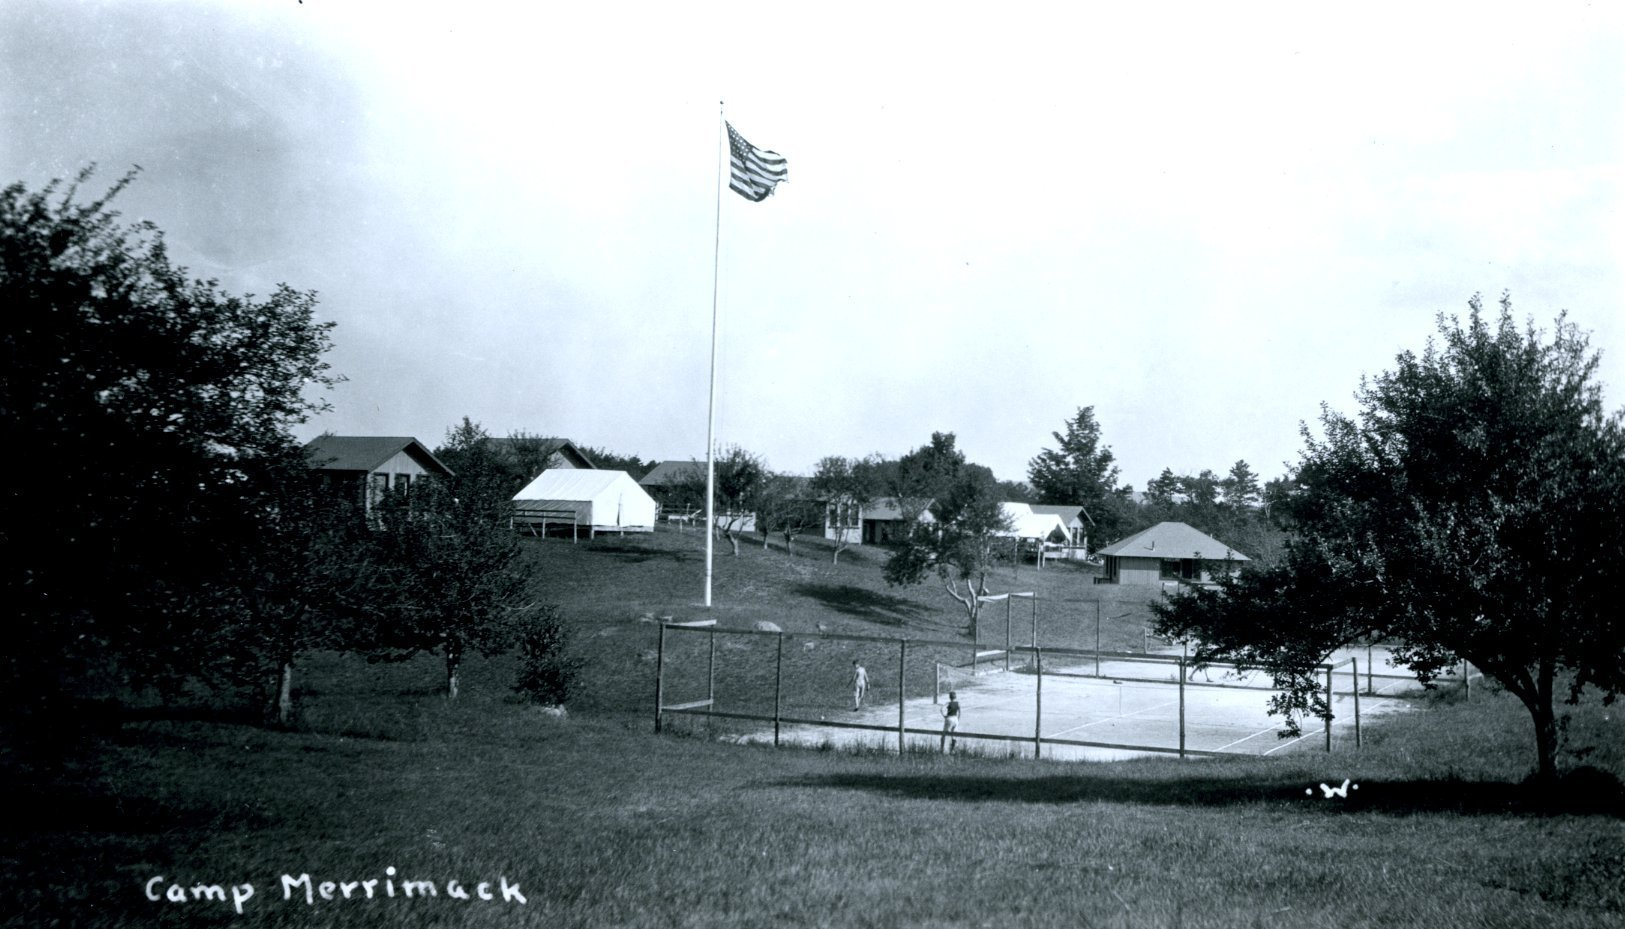 Postcard image of tennis courts at Camp Merrimack located in Hopkinton, N.H.